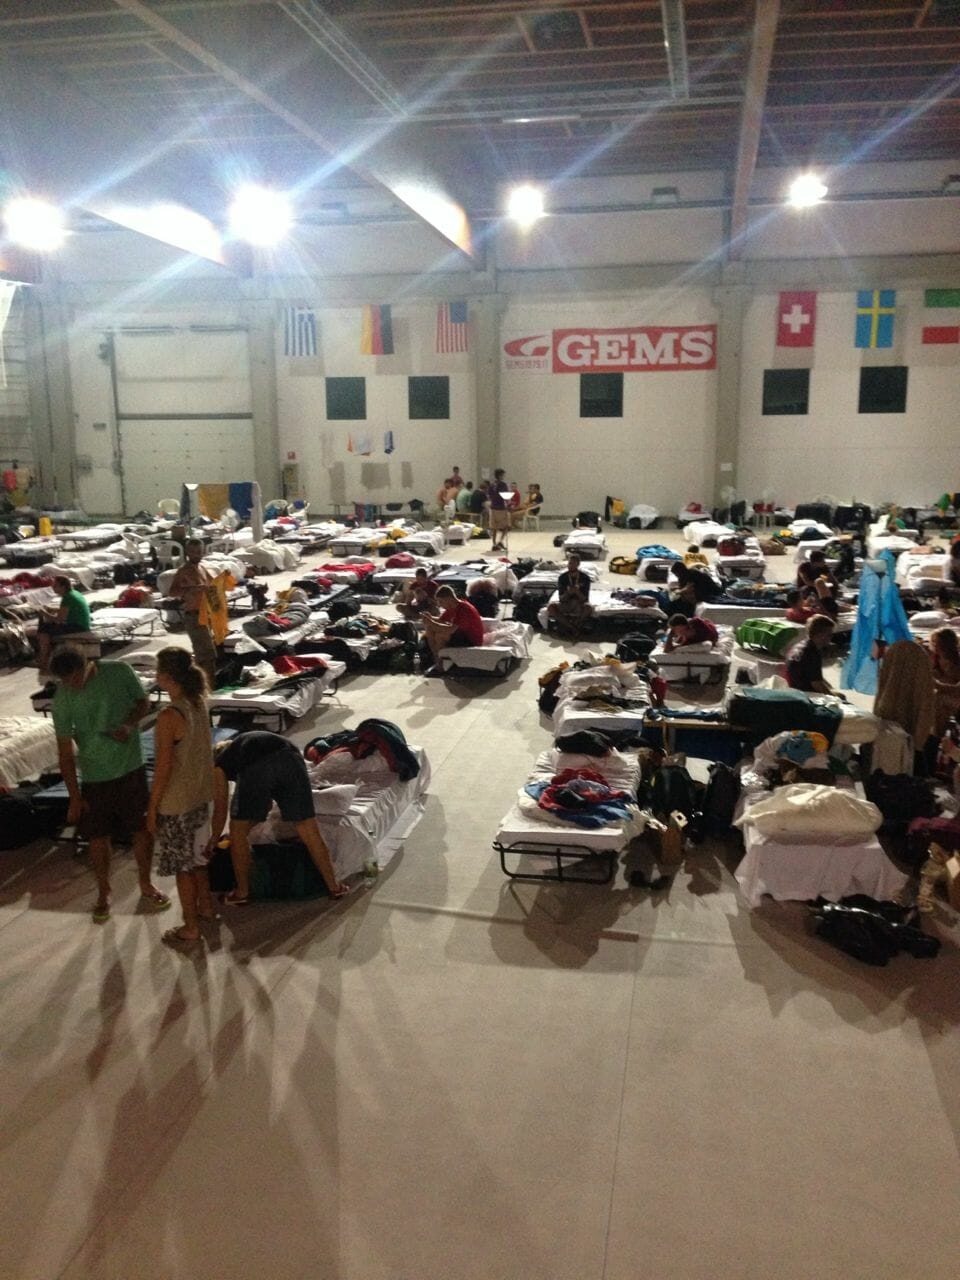 The volunteer sleeping accommodations in the gym.